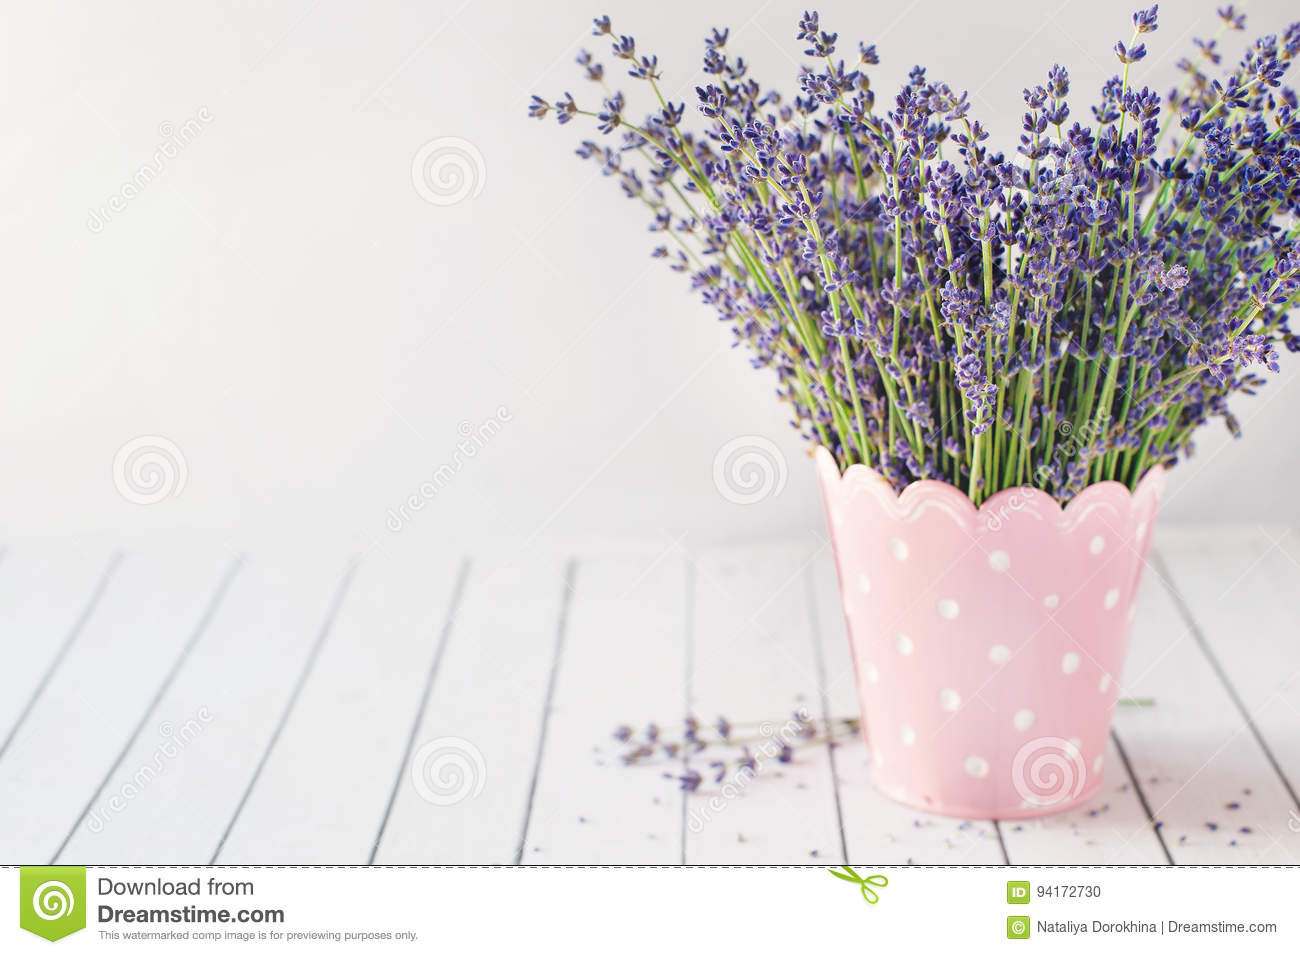 hyacinth forcing vase of bouquet of lavender in a vase provence style stock photo image of pertaining to download bouquet of lavender in a vase provence style stock photo image of border